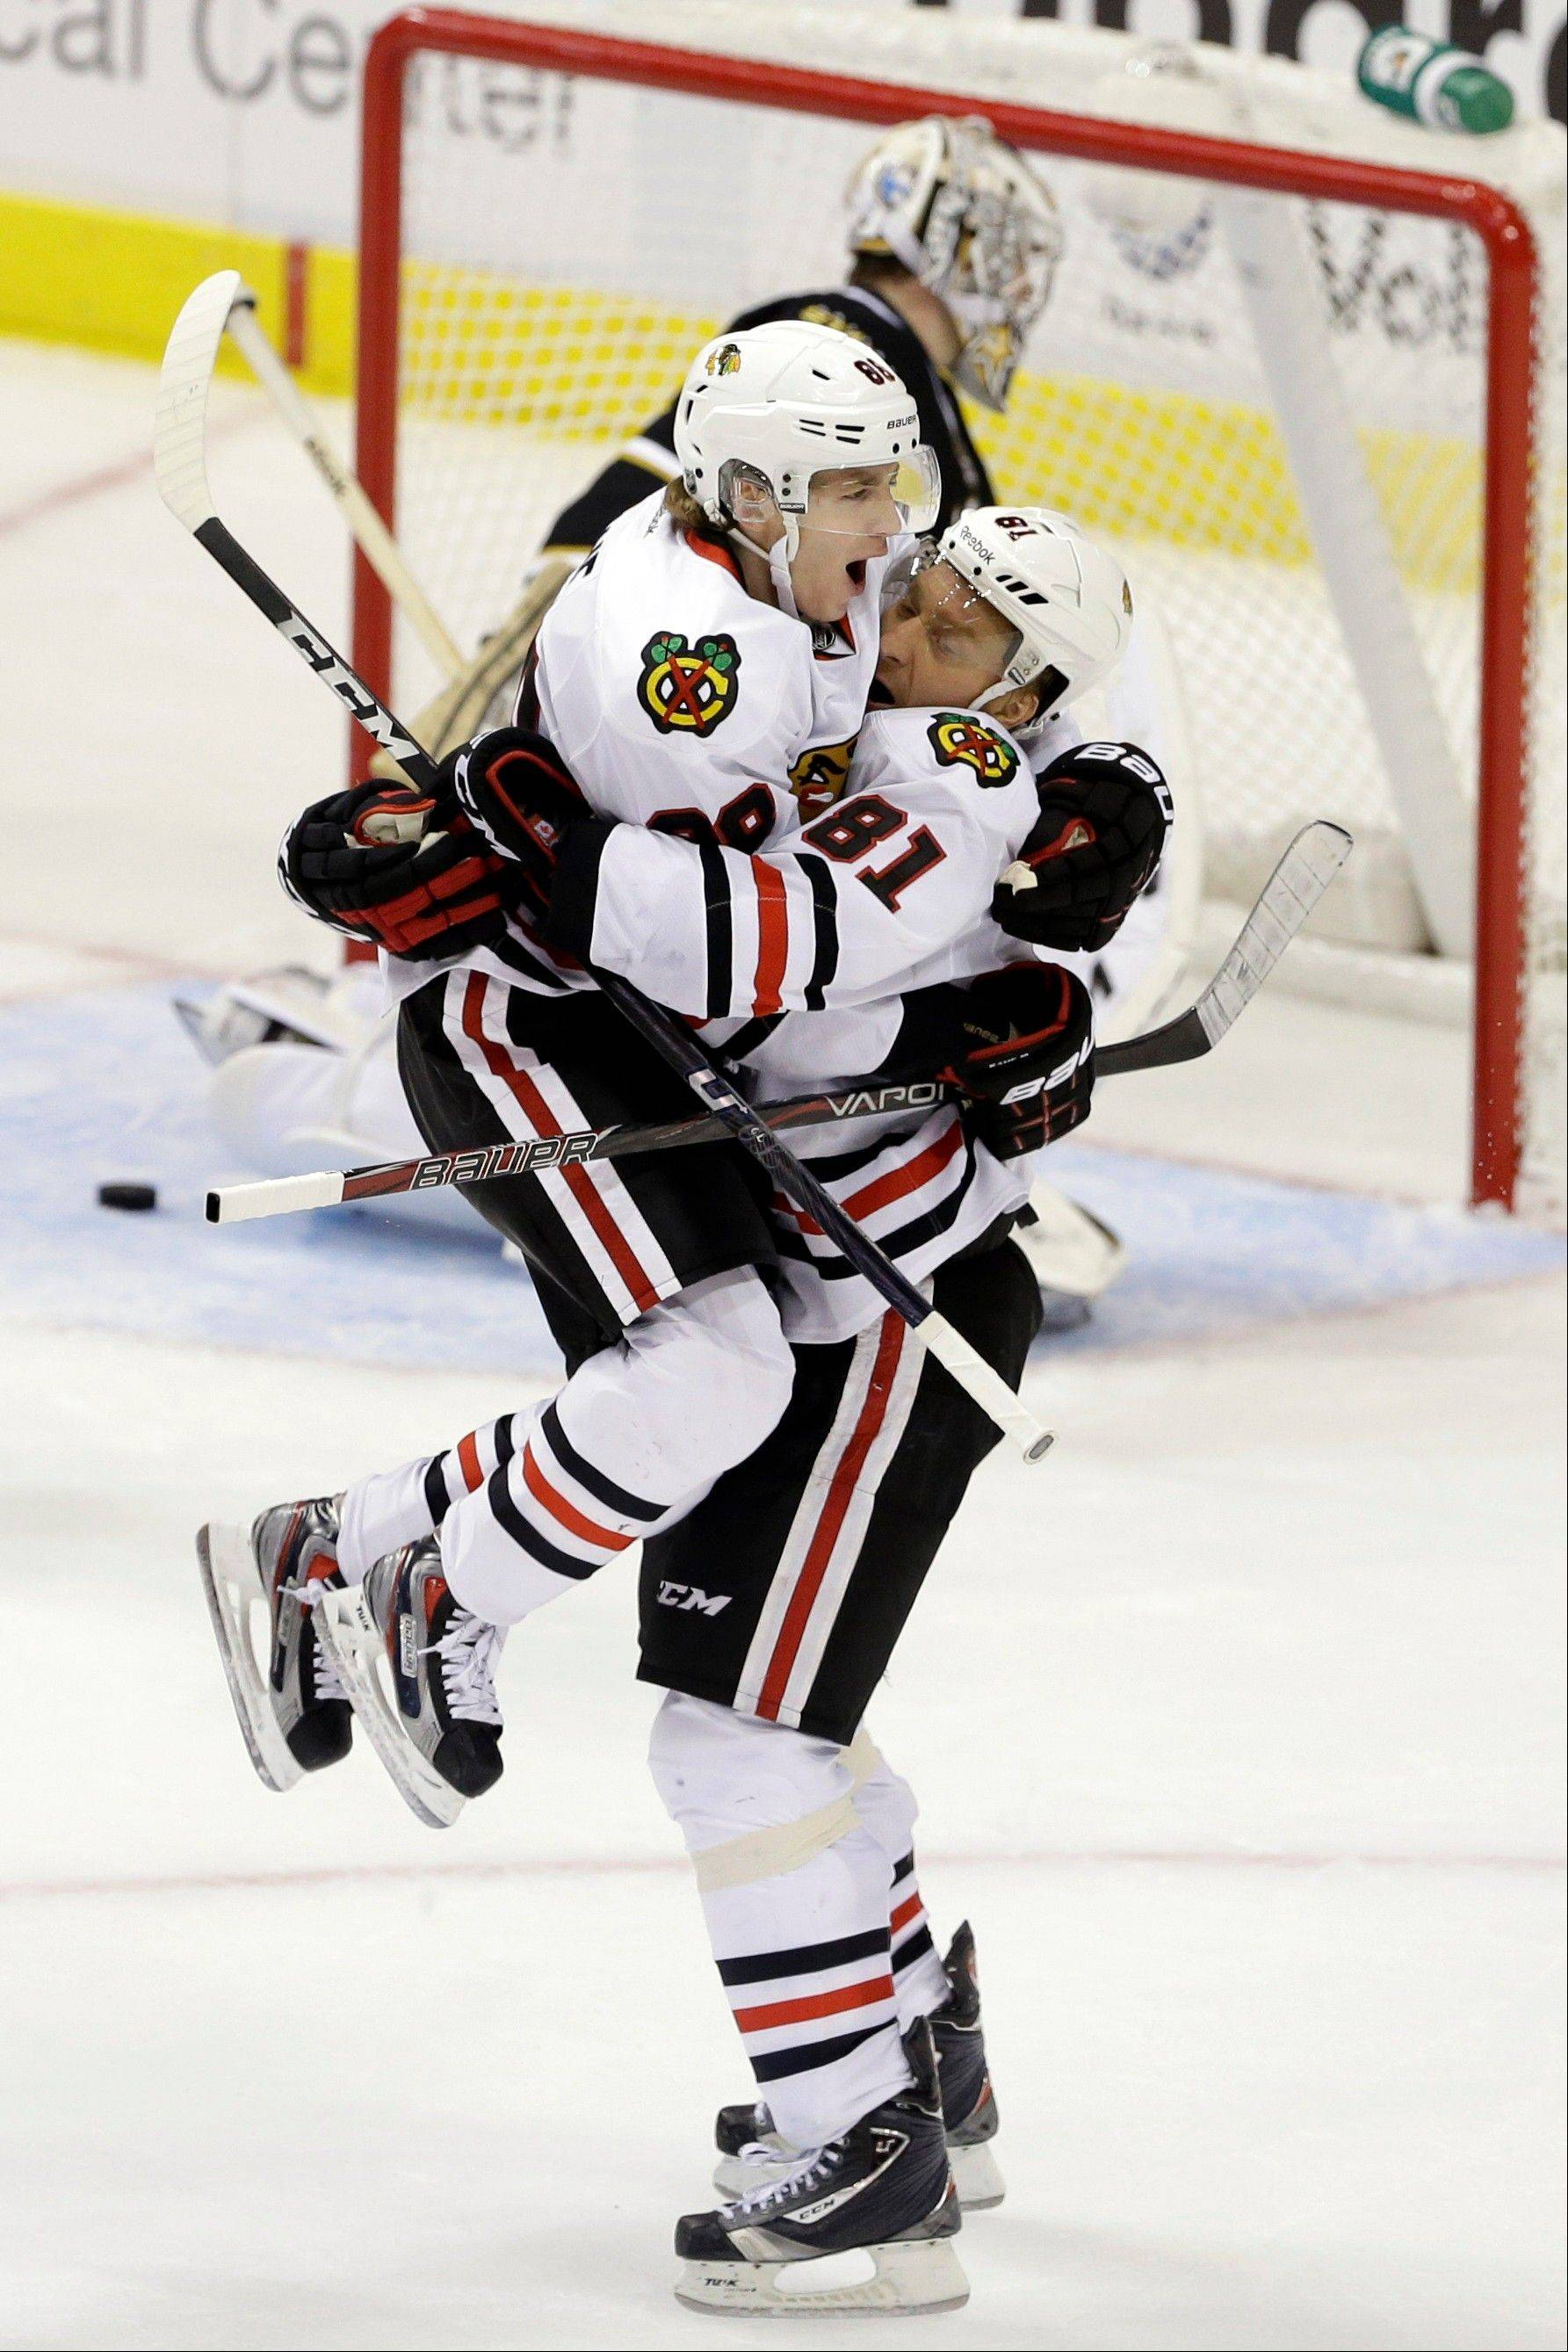 Chicago Blackhawks' Patrick Kane is lifted by Marian Hossa (81), of Slovakia , as they celebrate Hossa's overtime goal against Dallas Stars goalie Kari Lehtonen, rear, of Finland, during an NHL hockey game, Thursday, Jan. 24, 2013, in Dallas. The Blackhawks won 3-2.